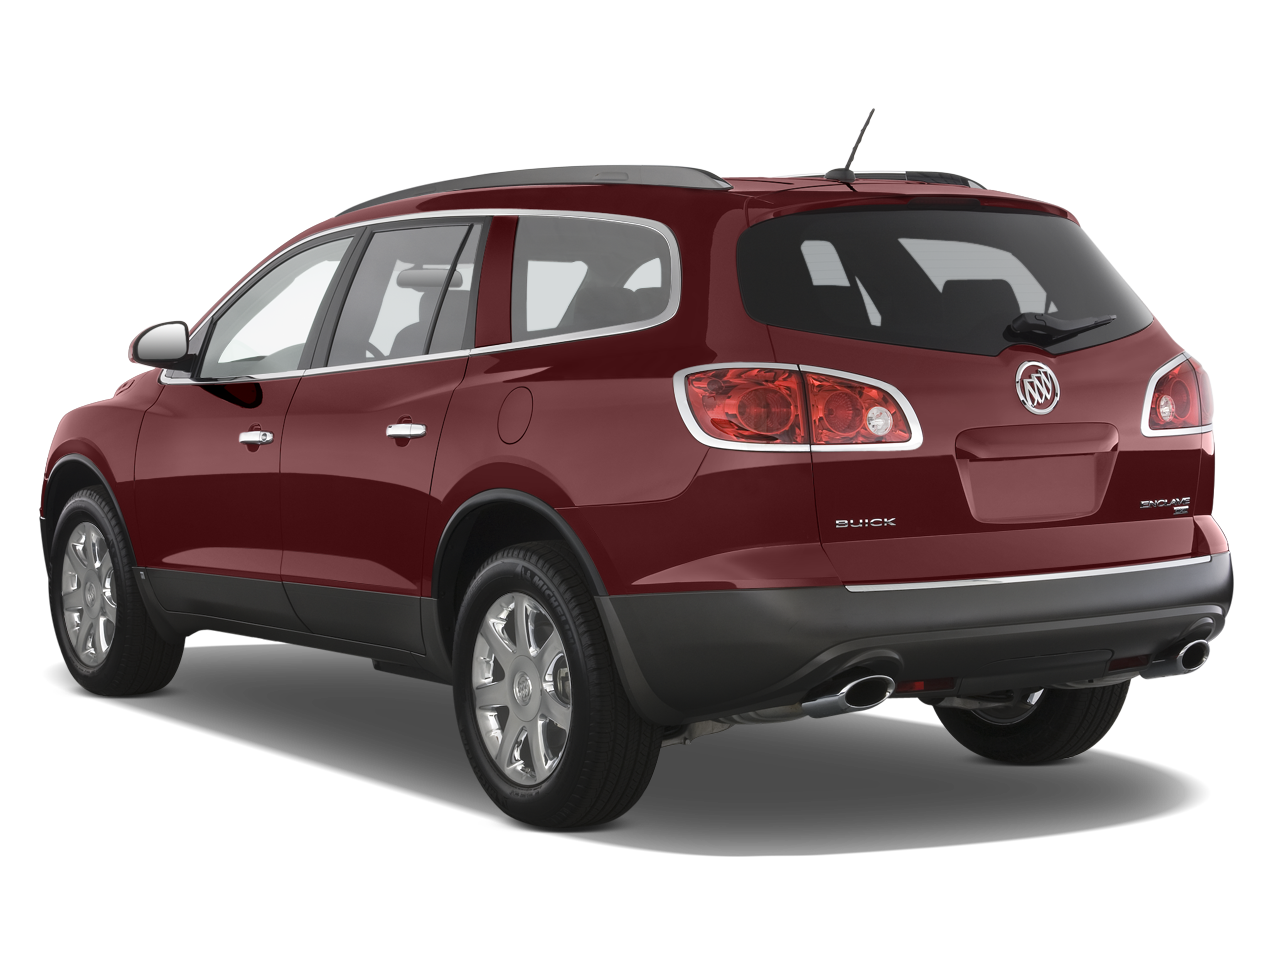 Buick Enclave Cxl Awd Suv Angular Rear on 2008 Buick Lacrosse Cxl